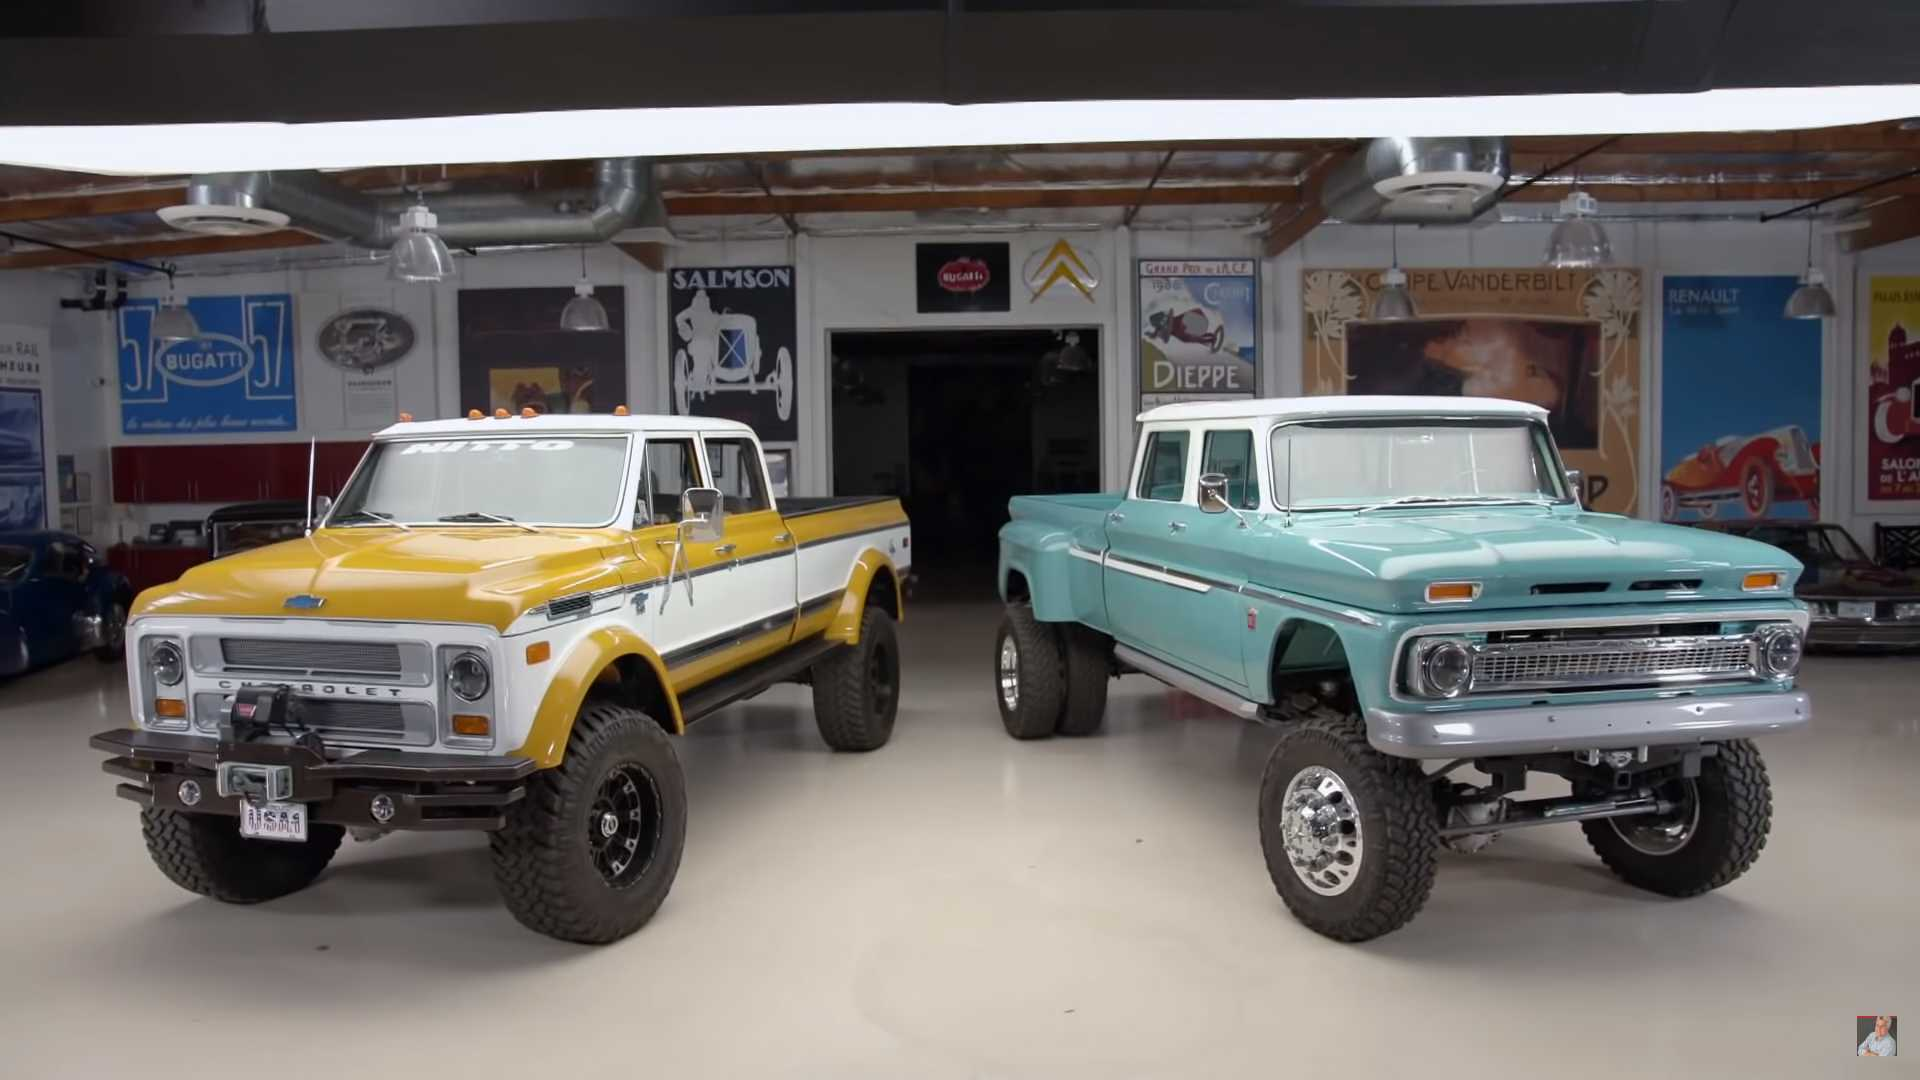 Lifted Chevy Restomod Trucks Tower Over Jay Leno S Garage